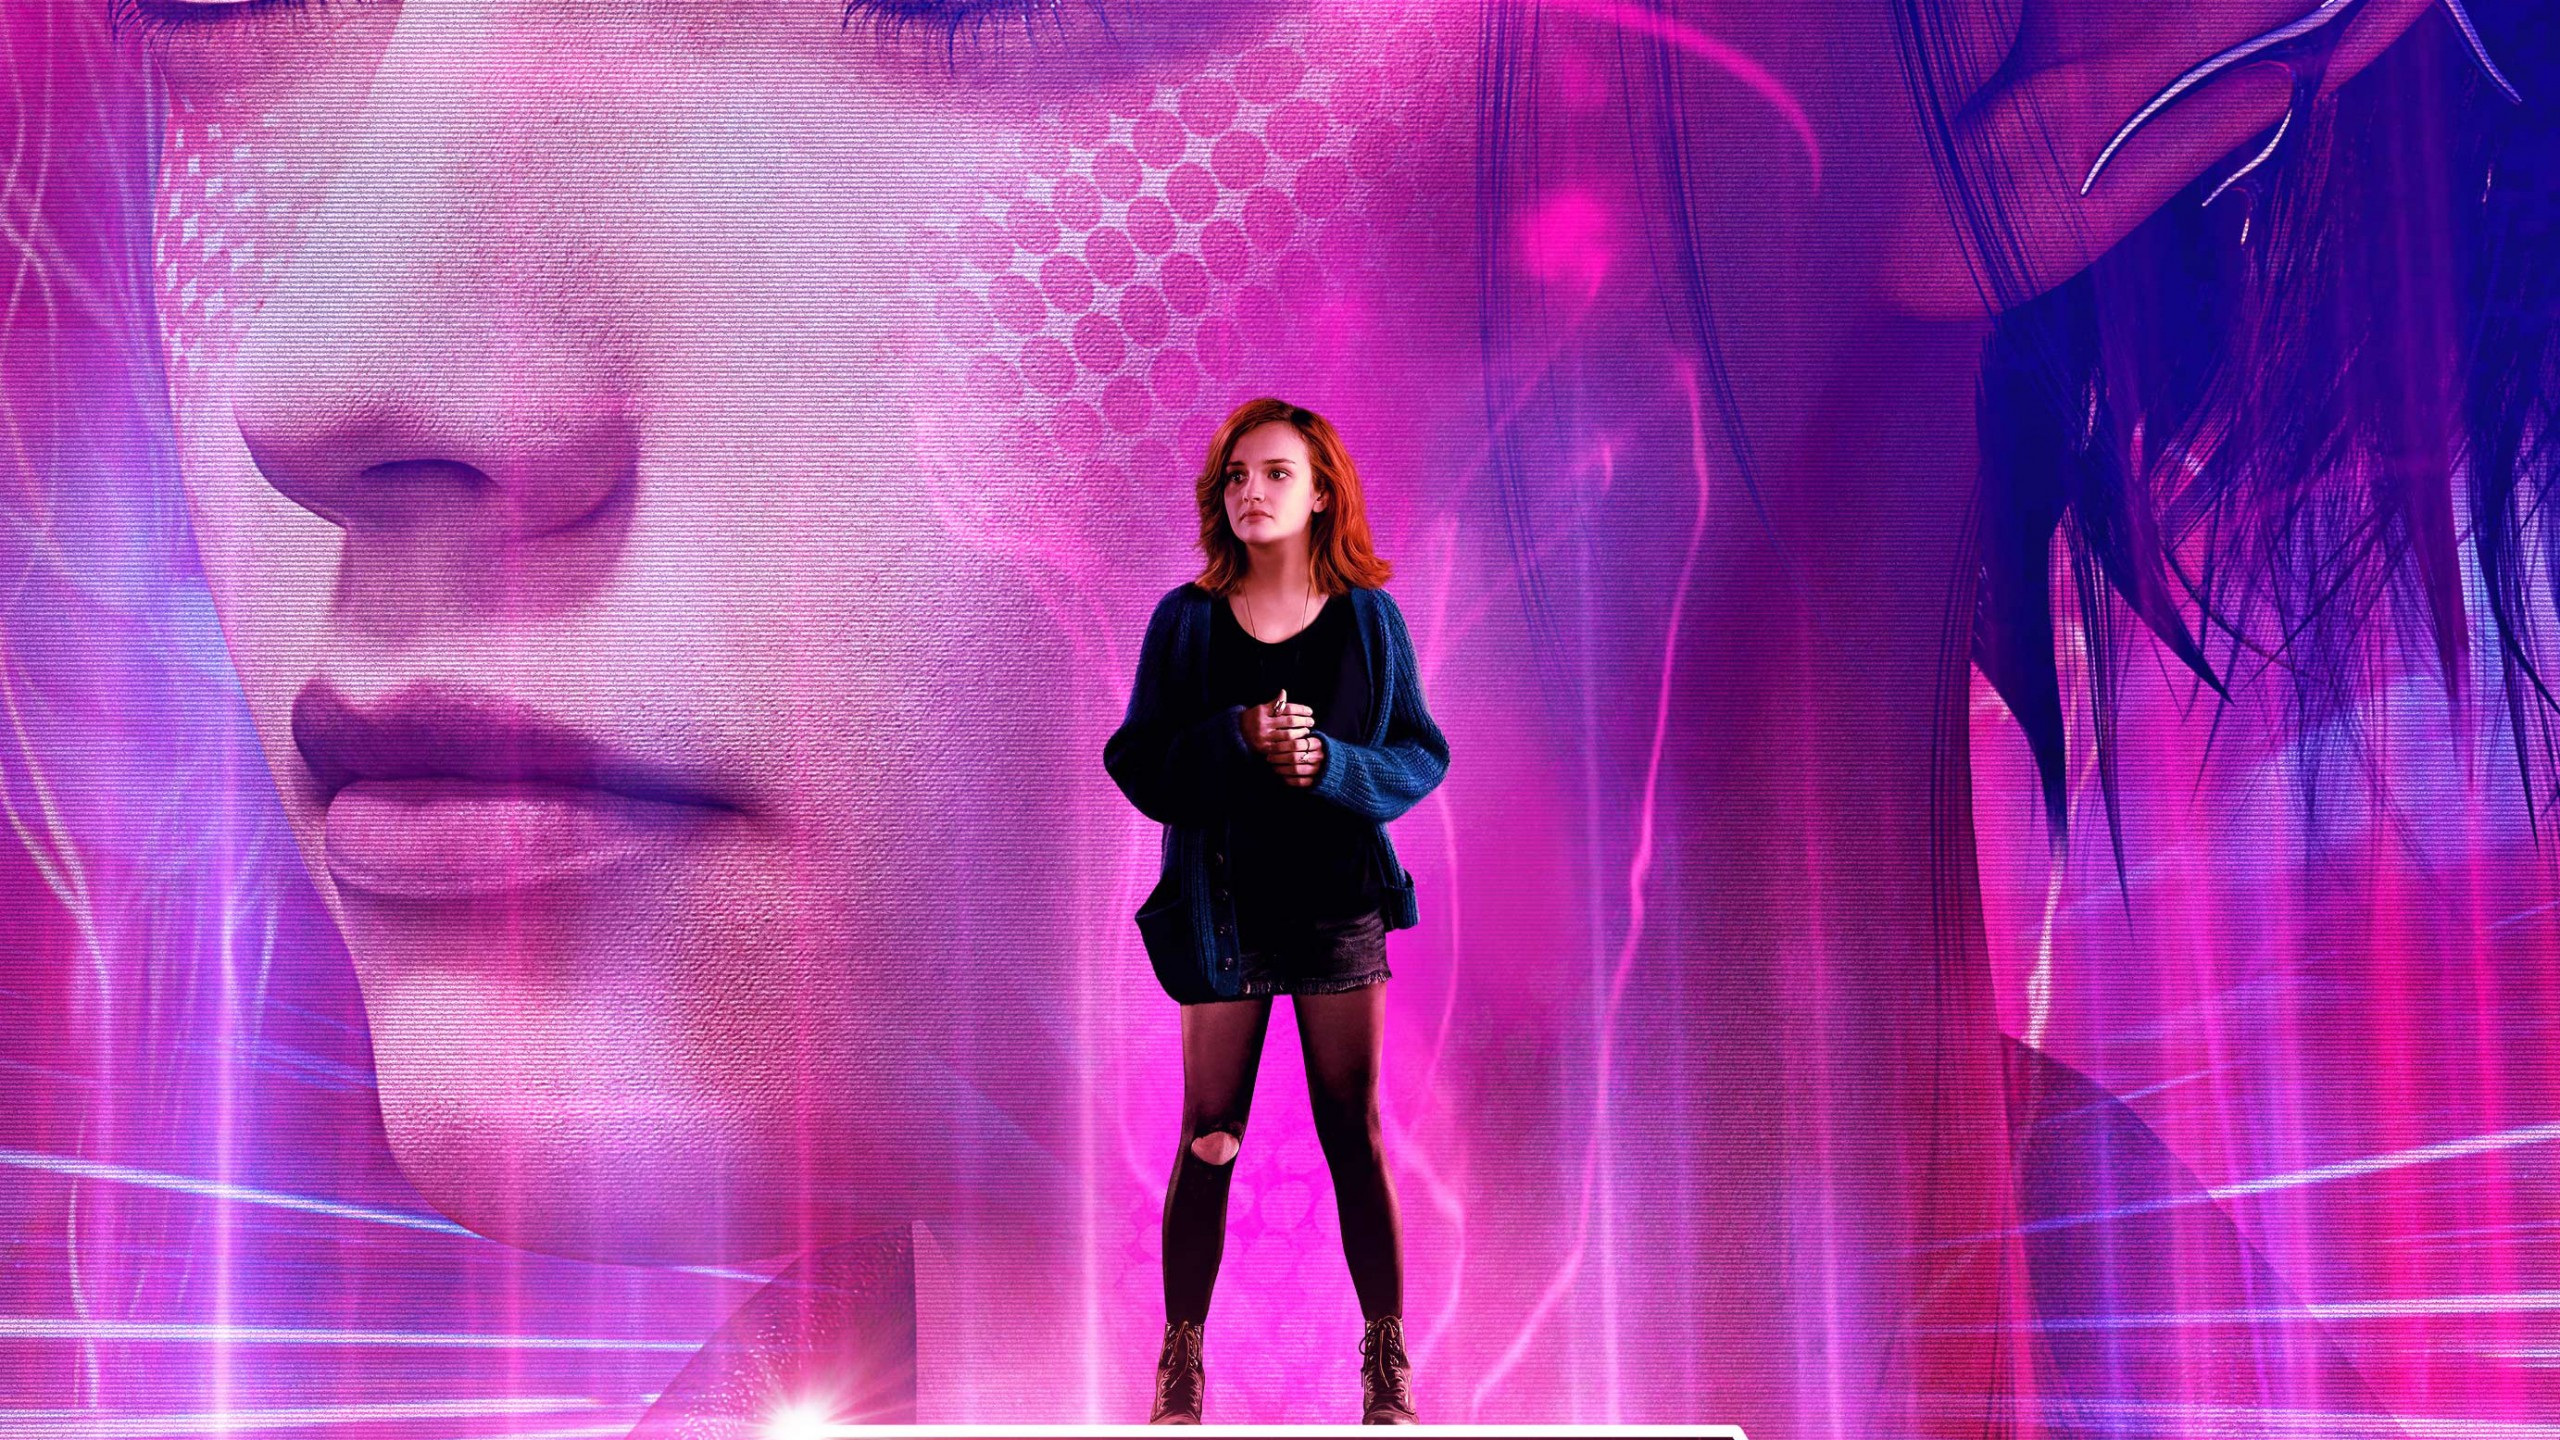 Top 10 3d Wallpapers For Android Olivia Cooke In Ready Player One Wallpapers Hd